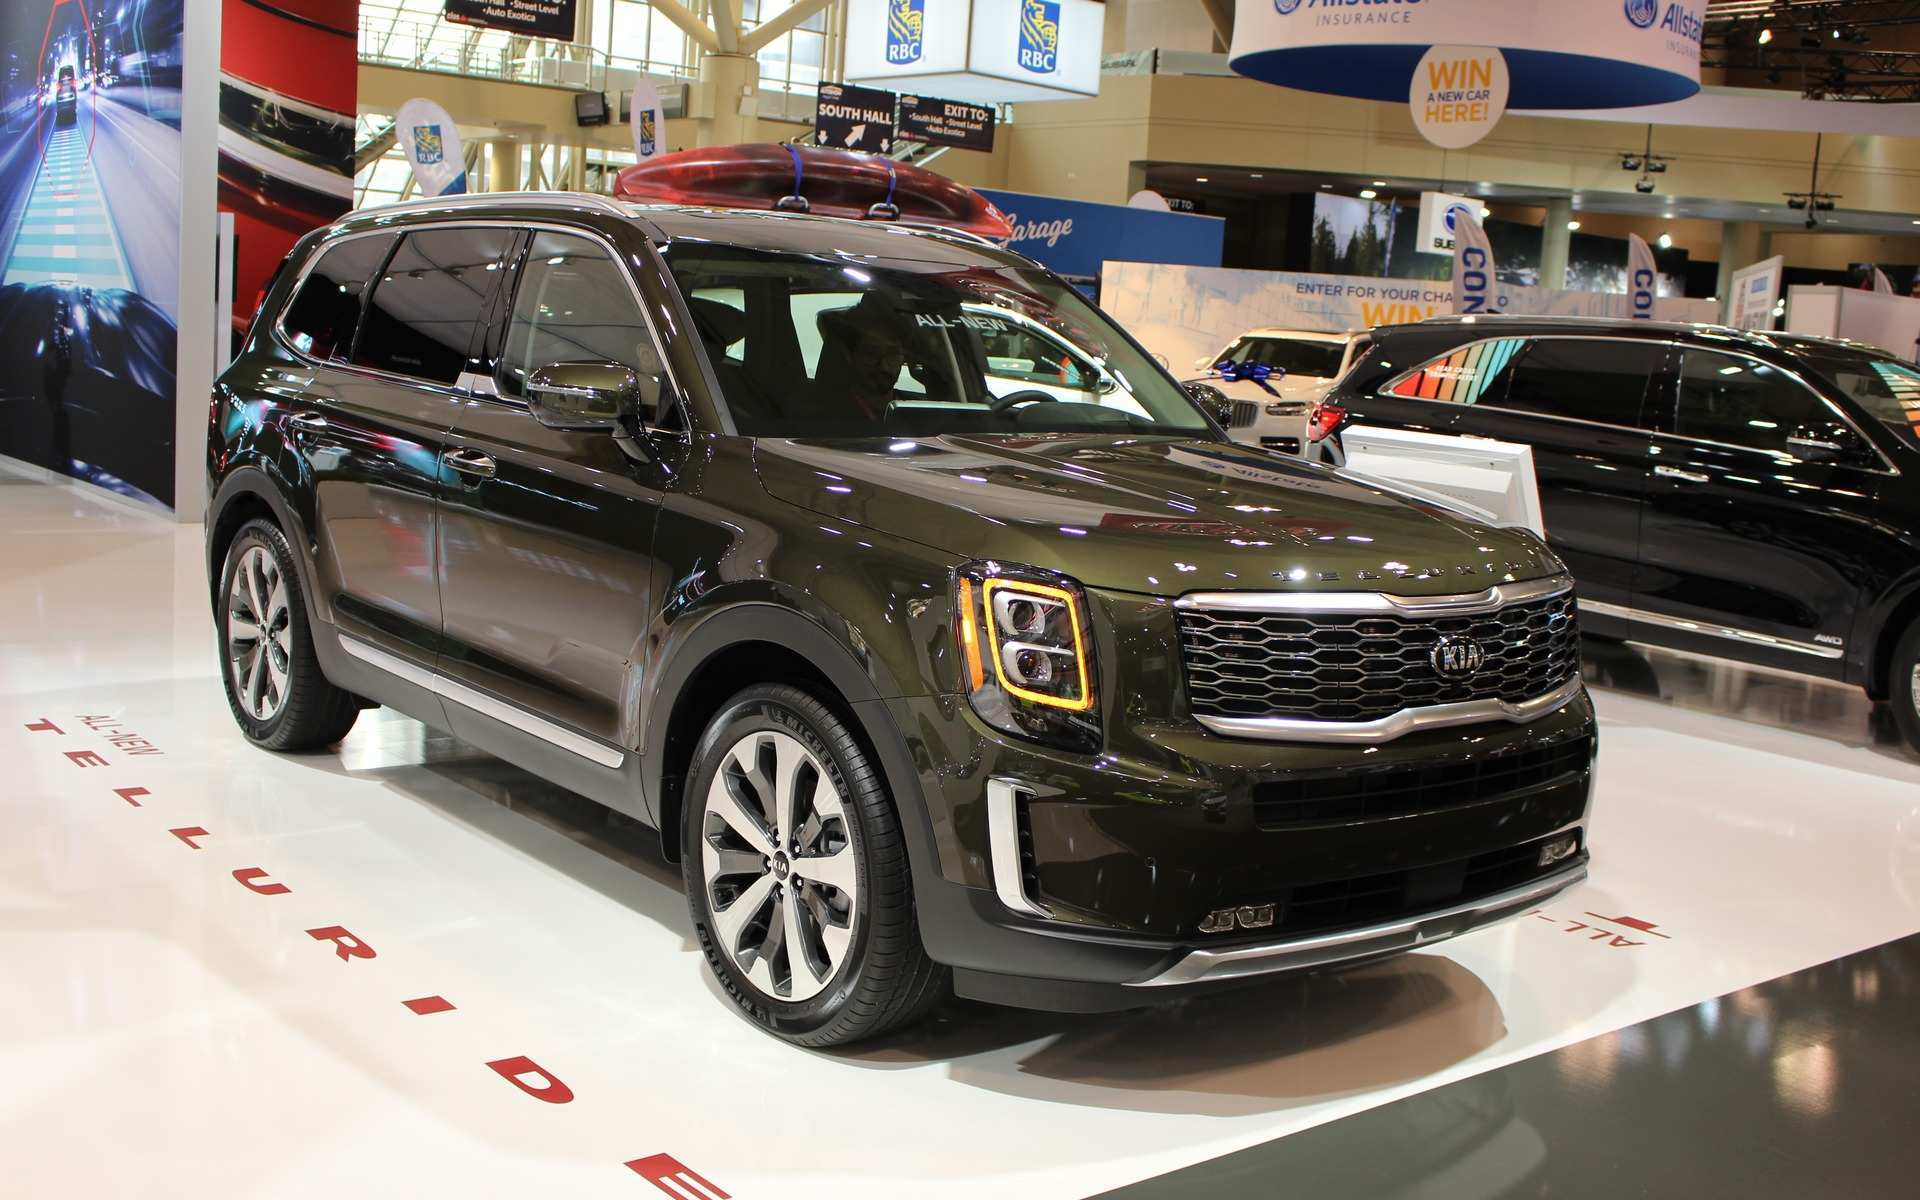 71 Great When Does The 2020 Kia Telluride Come Out Exterior and Interior with When Does The 2020 Kia Telluride Come Out